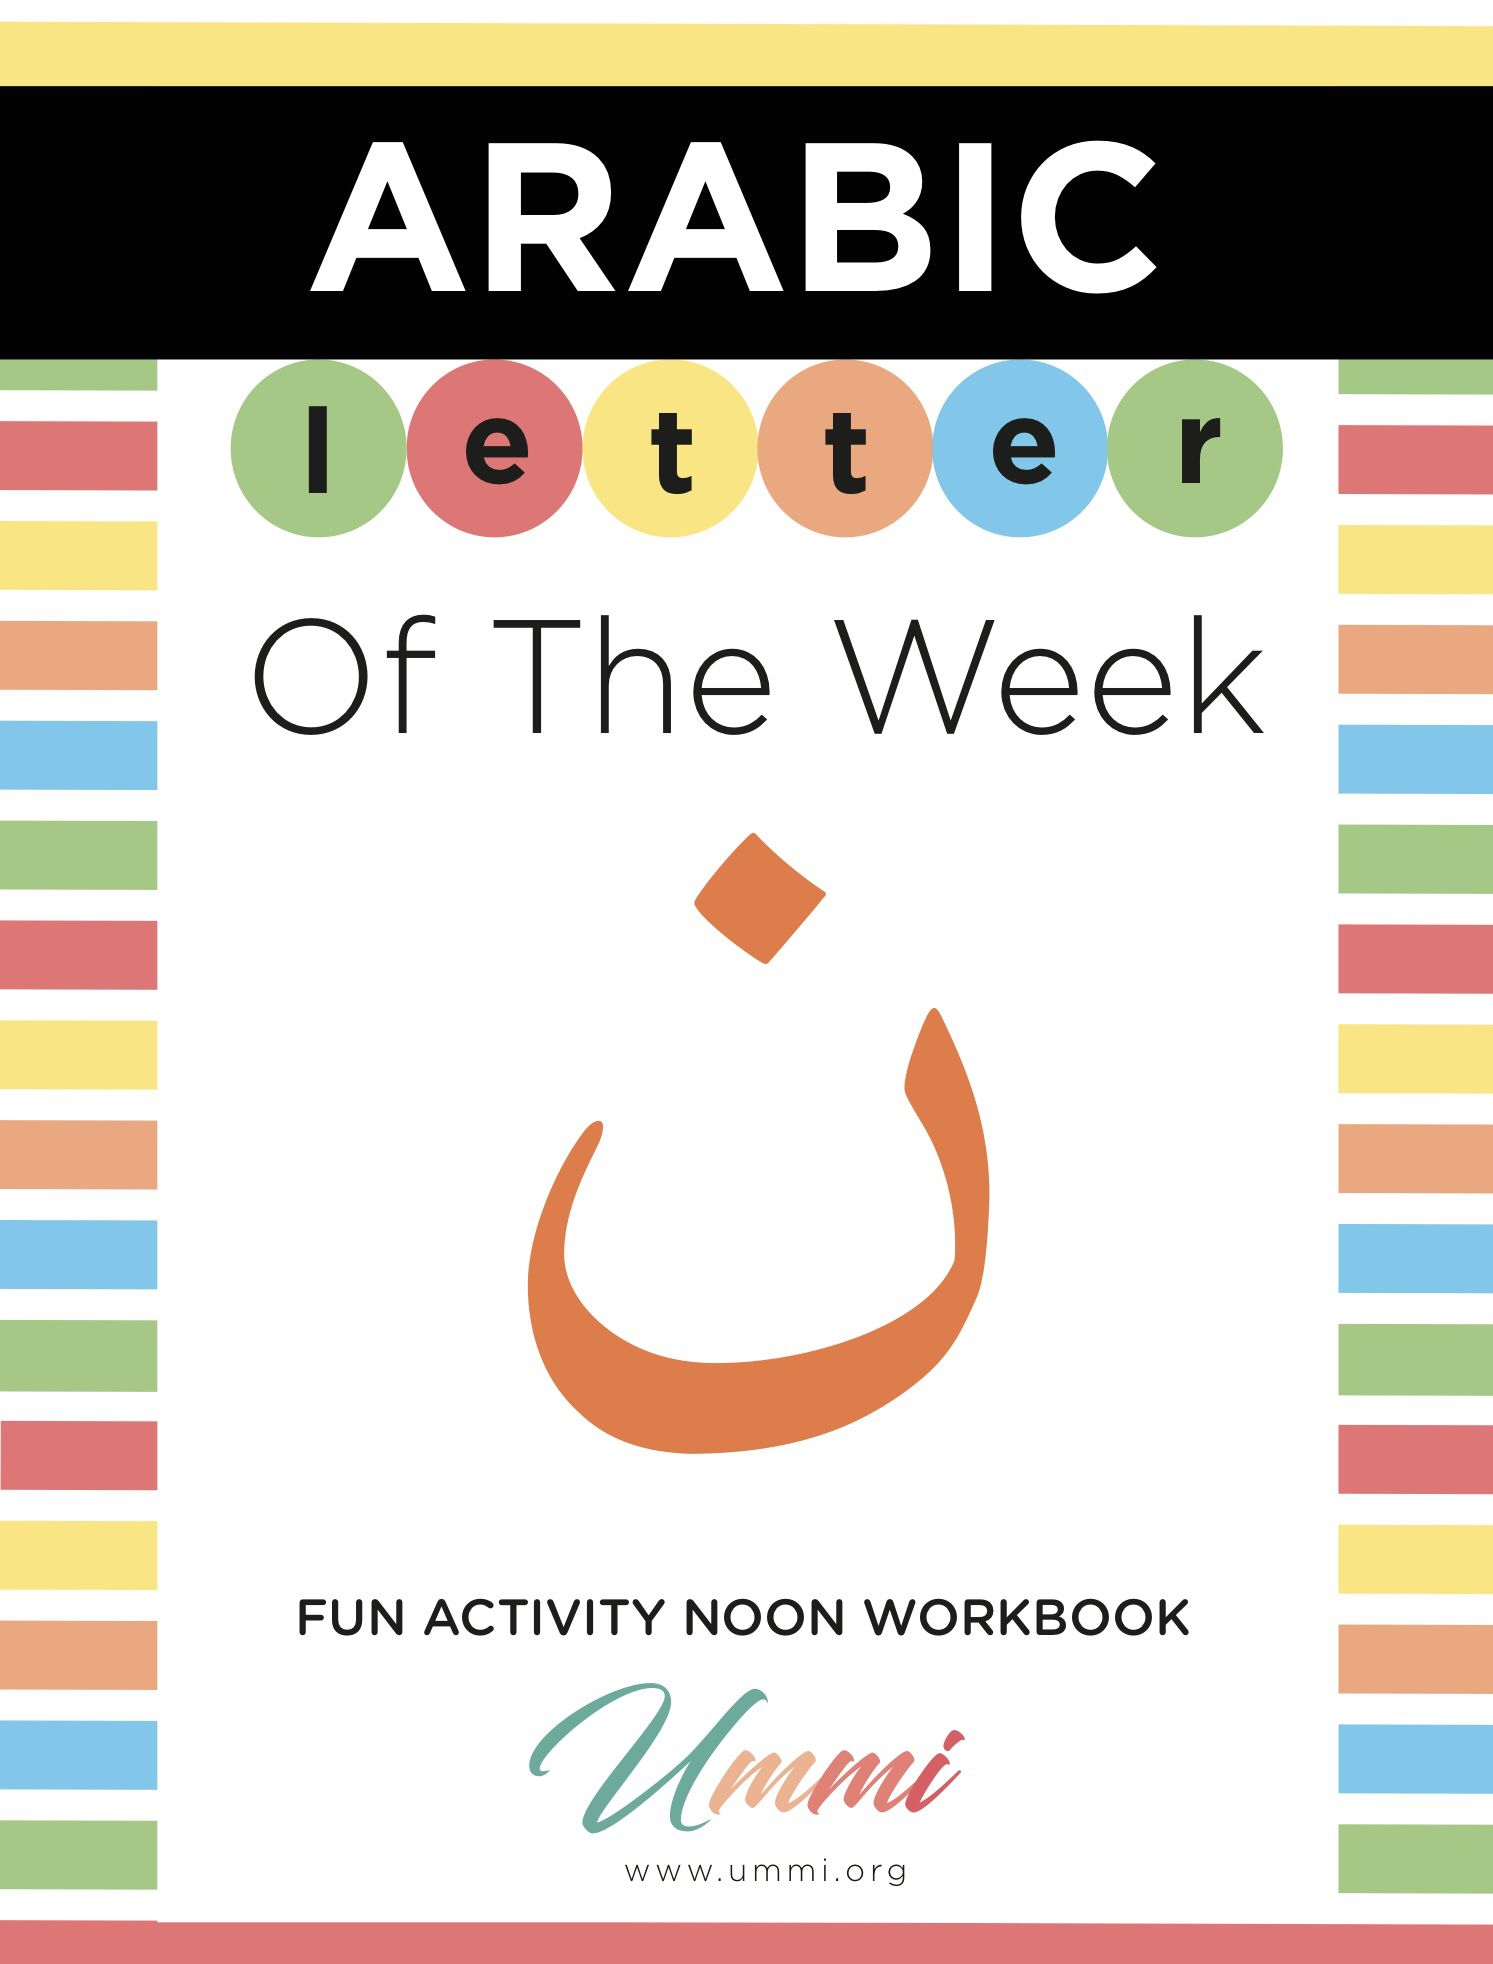 Enjoy The Free Colorful Letter Of The Week Noon Workbook